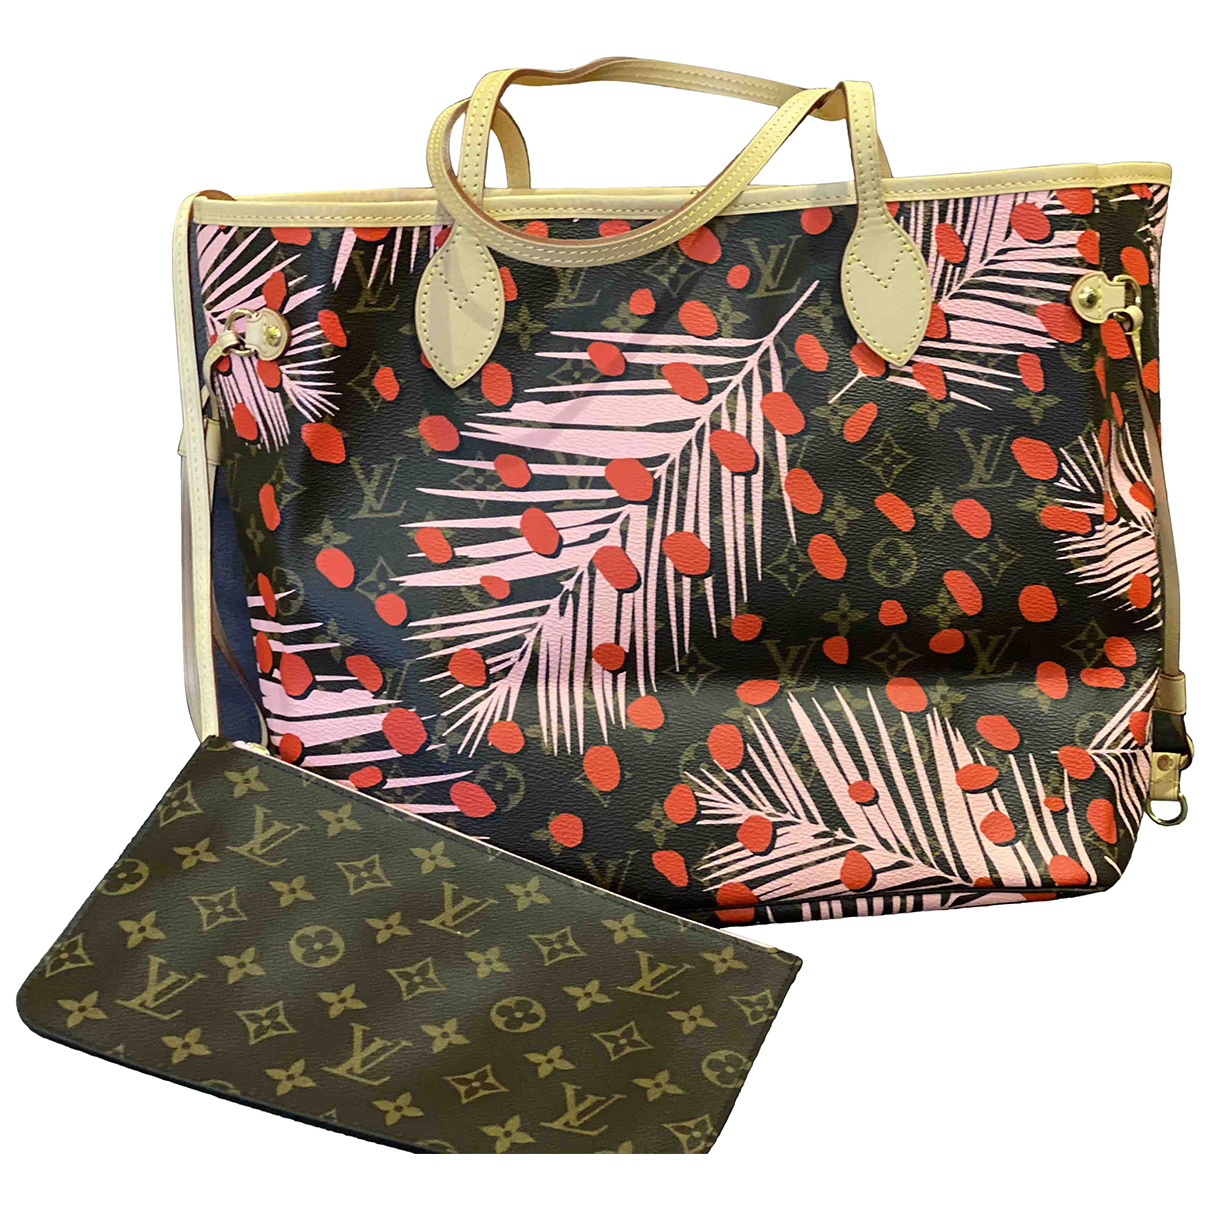 Louis Vuitton - Sac a main Neverfull pour femme en toile - multicolore